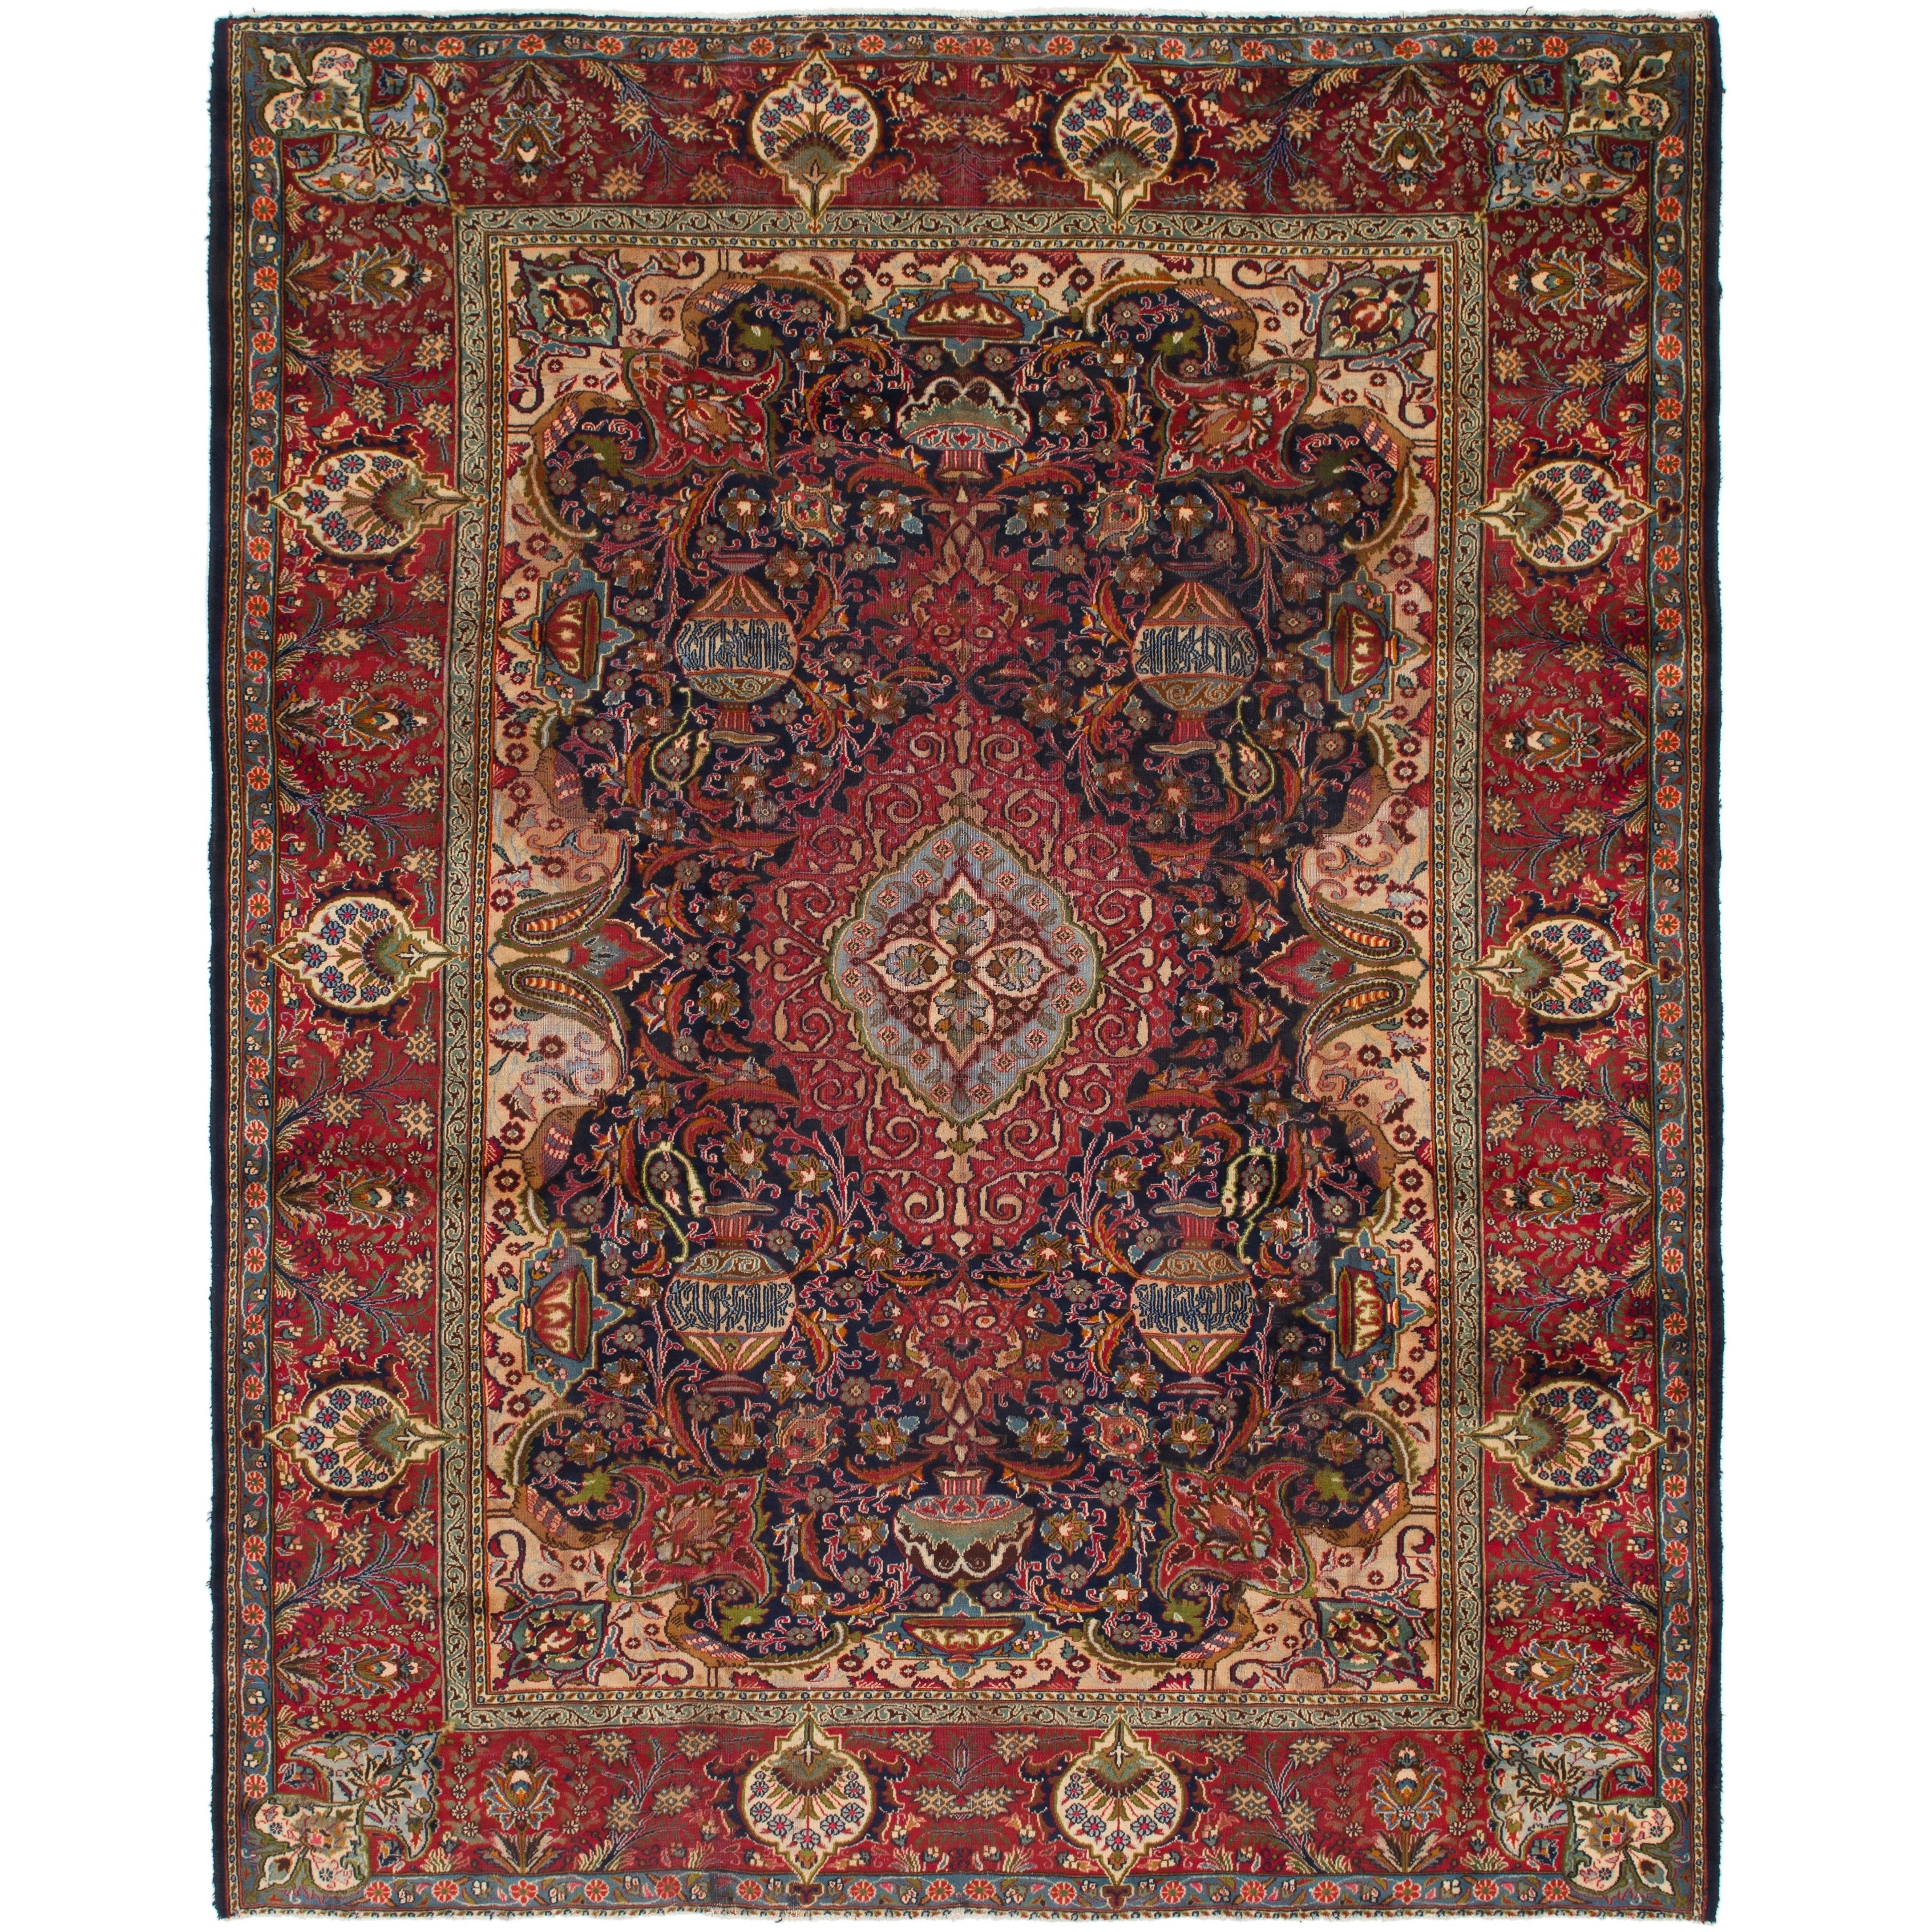 Hand Knotted Kashmar Antique Wool Area Rug - 9 10 x 12 5 (Navy blue - 9 10 x 12 5)